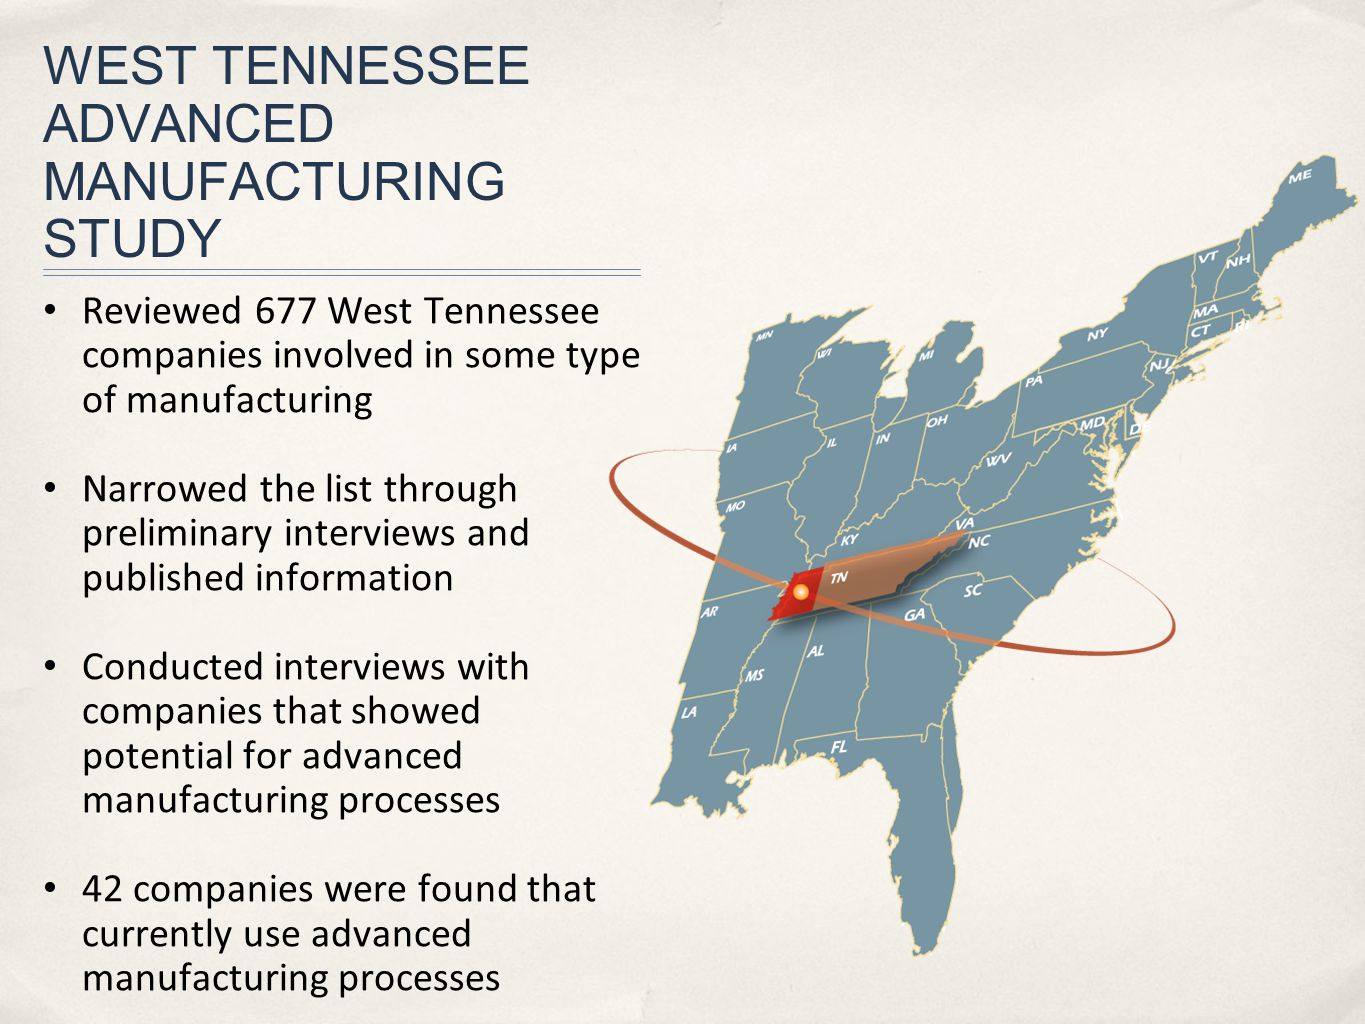 WEST TENNESSEE ADVANCED MANUFACTURING STUDY Reviewed 677 West Tennessee companies involved in some type of manufacturing Narrowed the list through pre